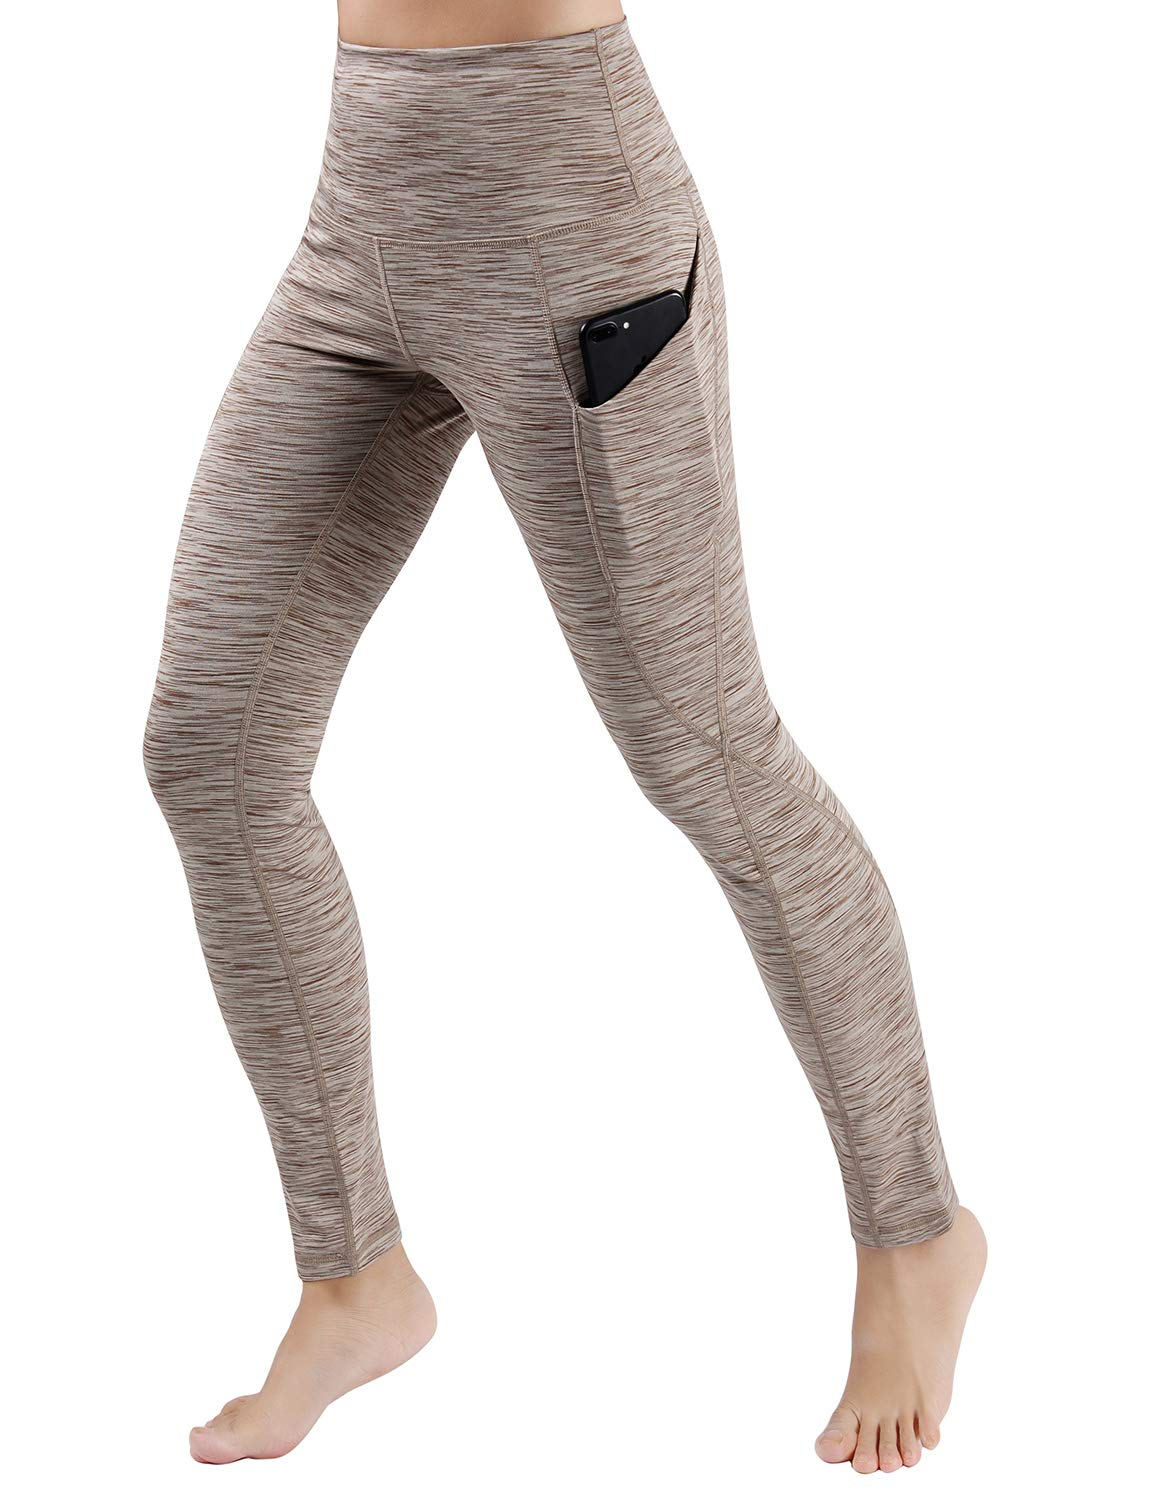 ODODOS High Waist Out Pocket Yoga Pants Tummy Control Workout Running 4 Way Stretch Yoga Leggings,SpaceDyeBrown,X-Small